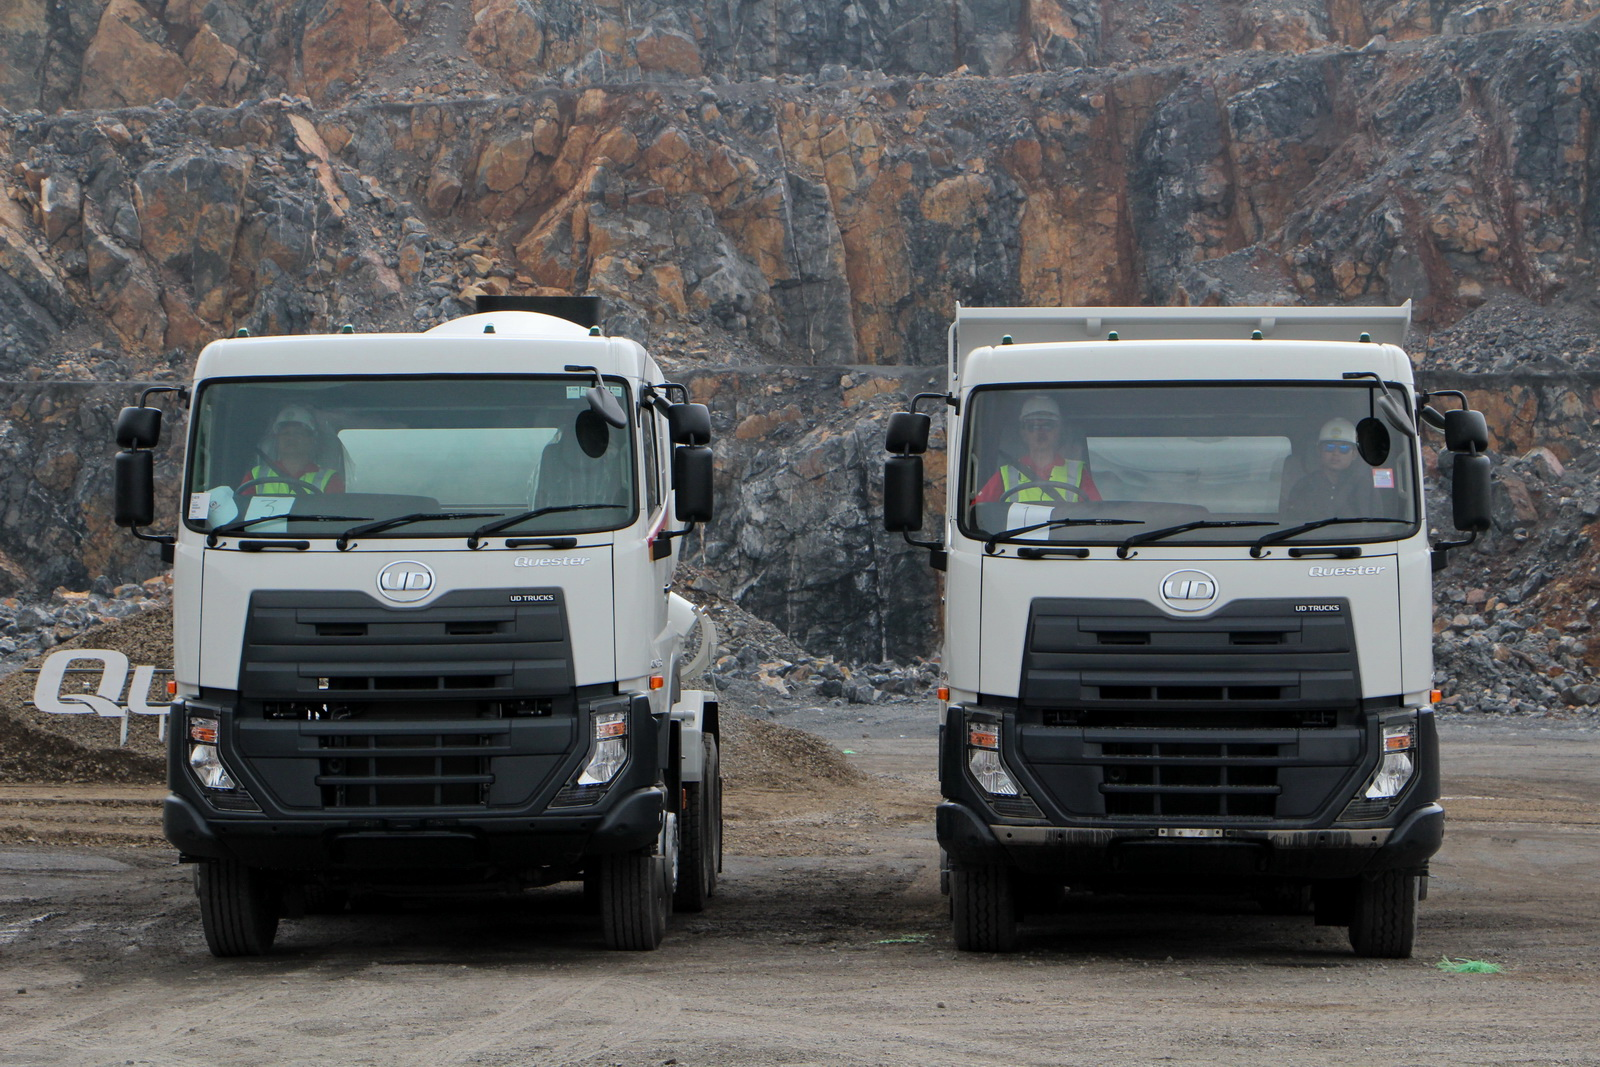 ud_truck_quester_02